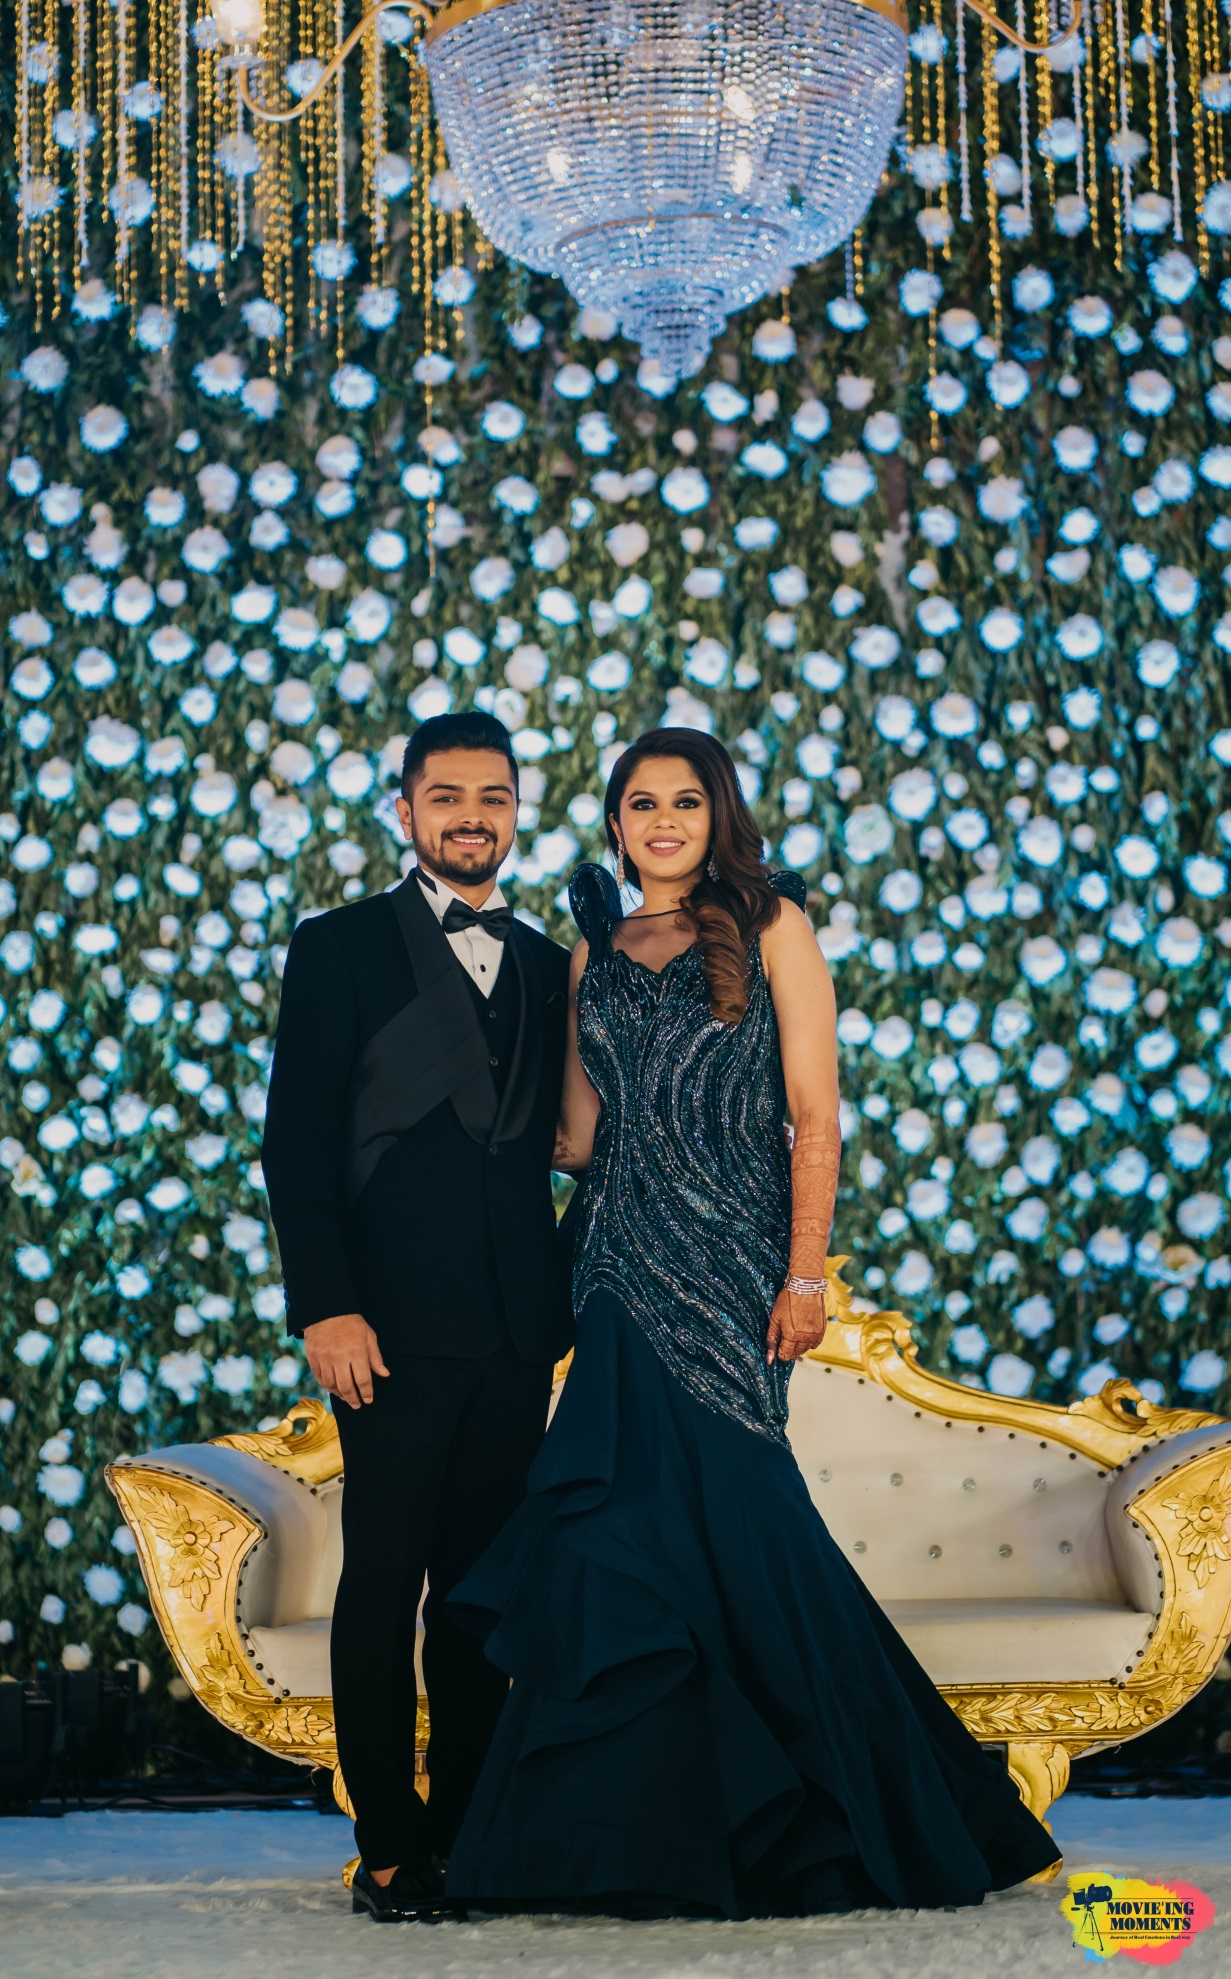 Bride and groom reception outfits